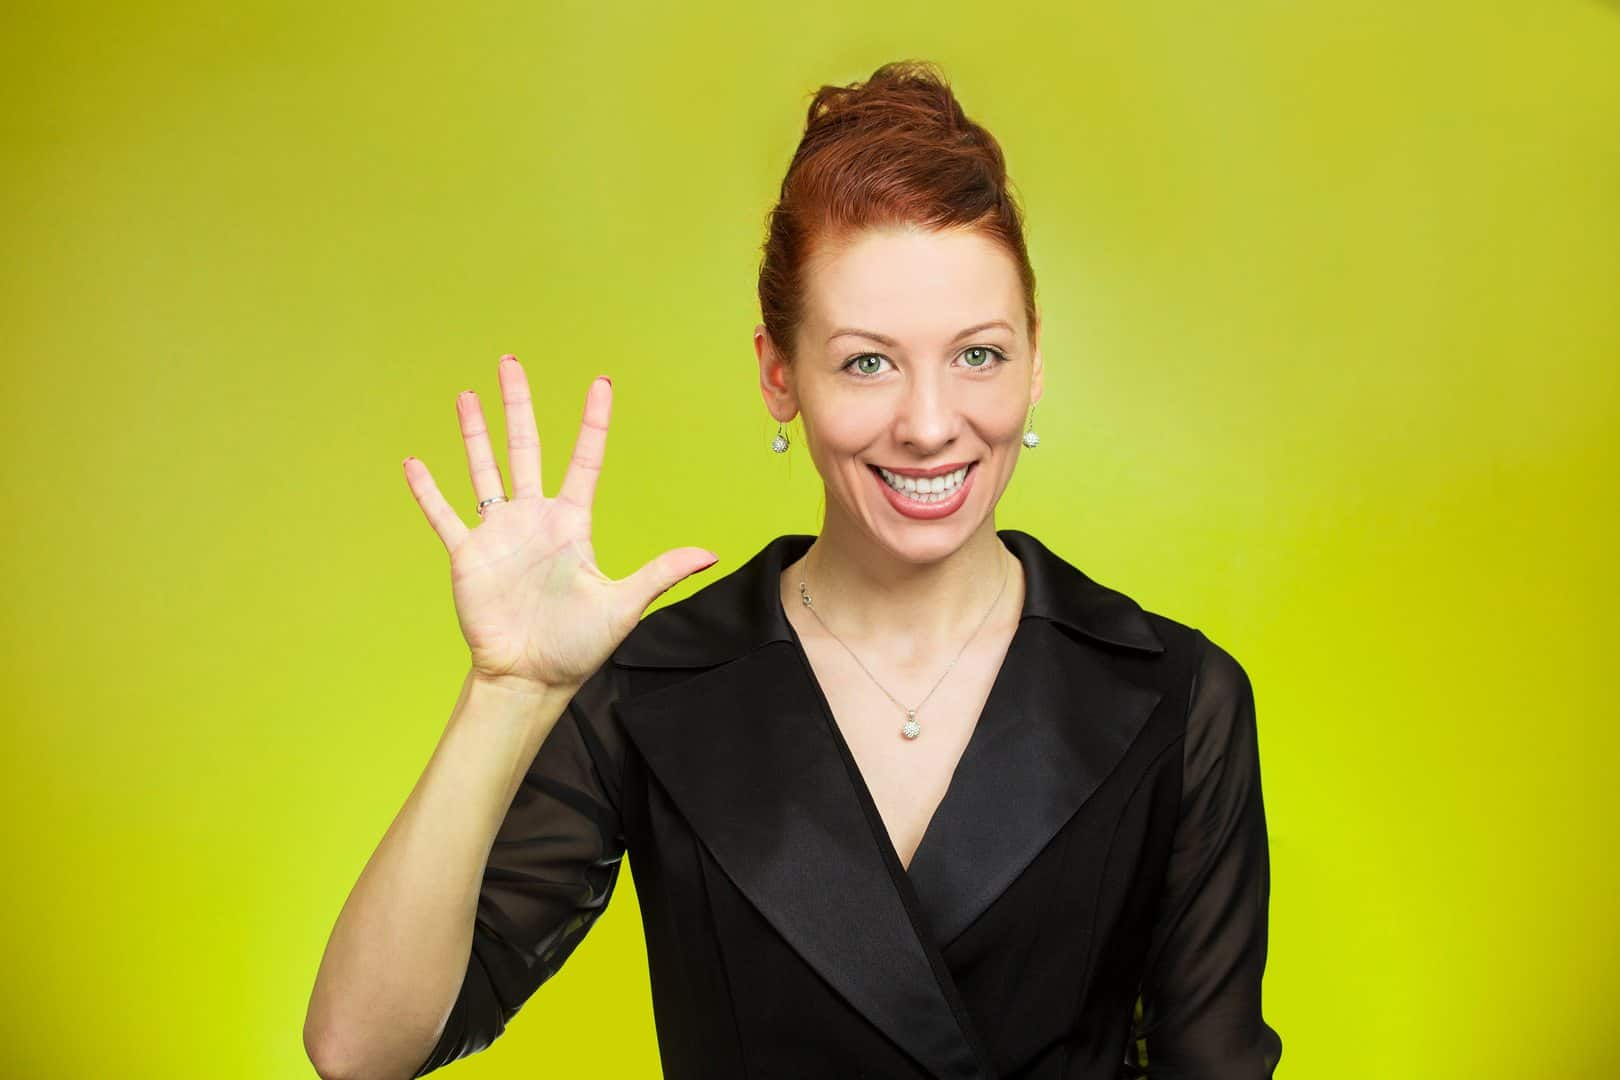 Closeup portrait, happy, smiling young woman making five times sign gesture with hand fingers, isolated green background. Positive human emotion facial expression feelings, attitude, symbol, reaction